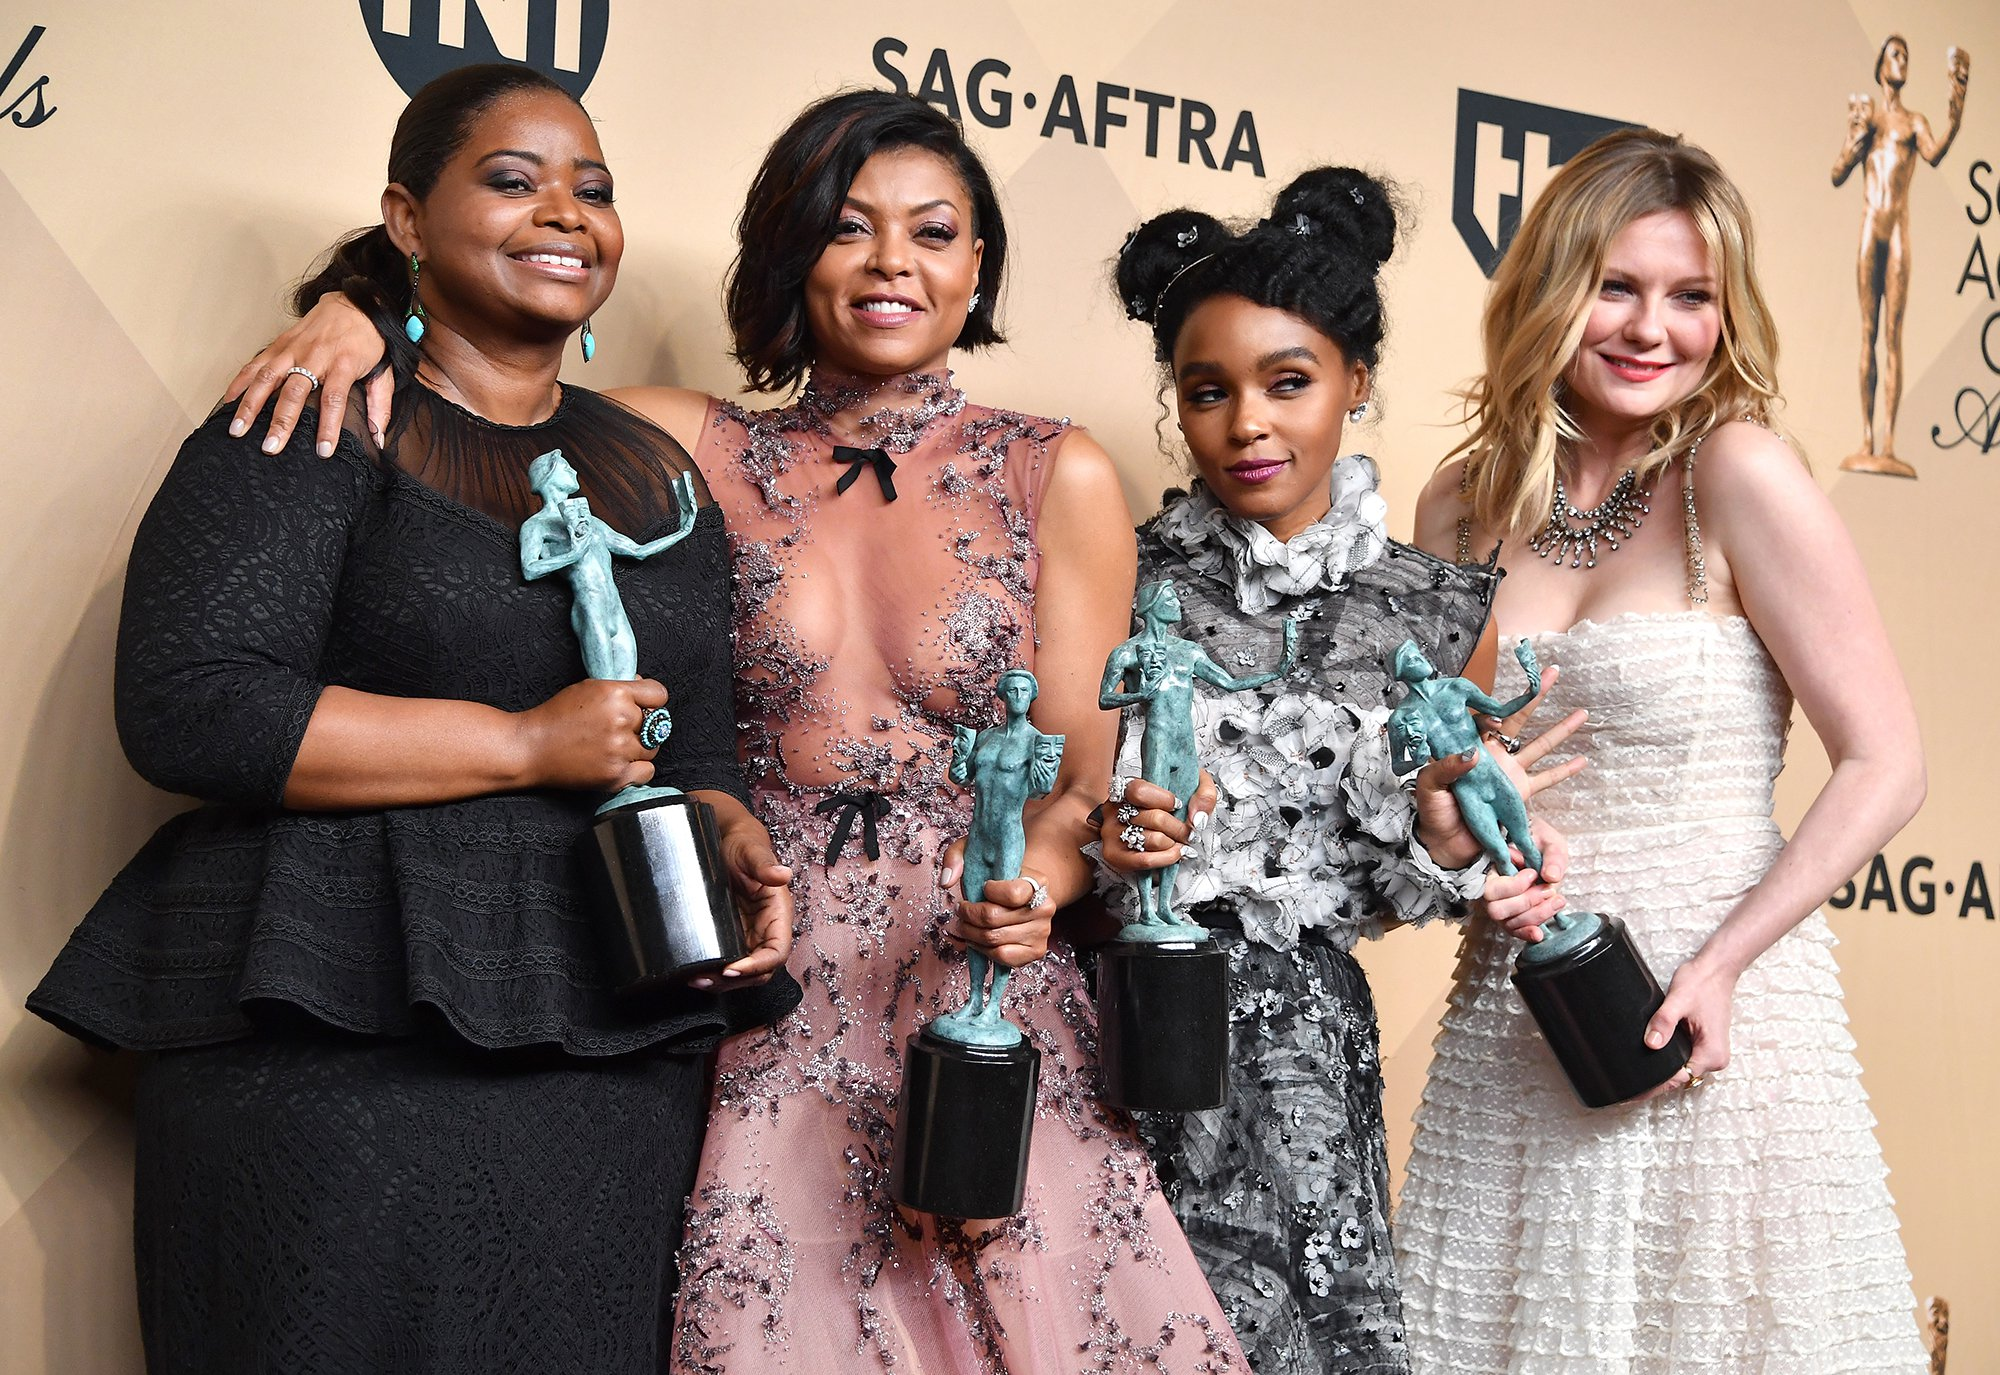 LOS ANGELES, CA - JANUARY 29:  (L-R) Actors Octavia Spencer, Taraji P. Henson, Janelle Monae and Kirsten Dunst, winners of the Outstanding Cast in a Motion Picture award for 'Hidden Figures,' poses in the press room during the 23rd Annual Screen Actors Guild Awards at The Shrine Expo Hall on January 29, 2017 in Los Angeles, California.  (Photo by Steve Granitz/WireImage)